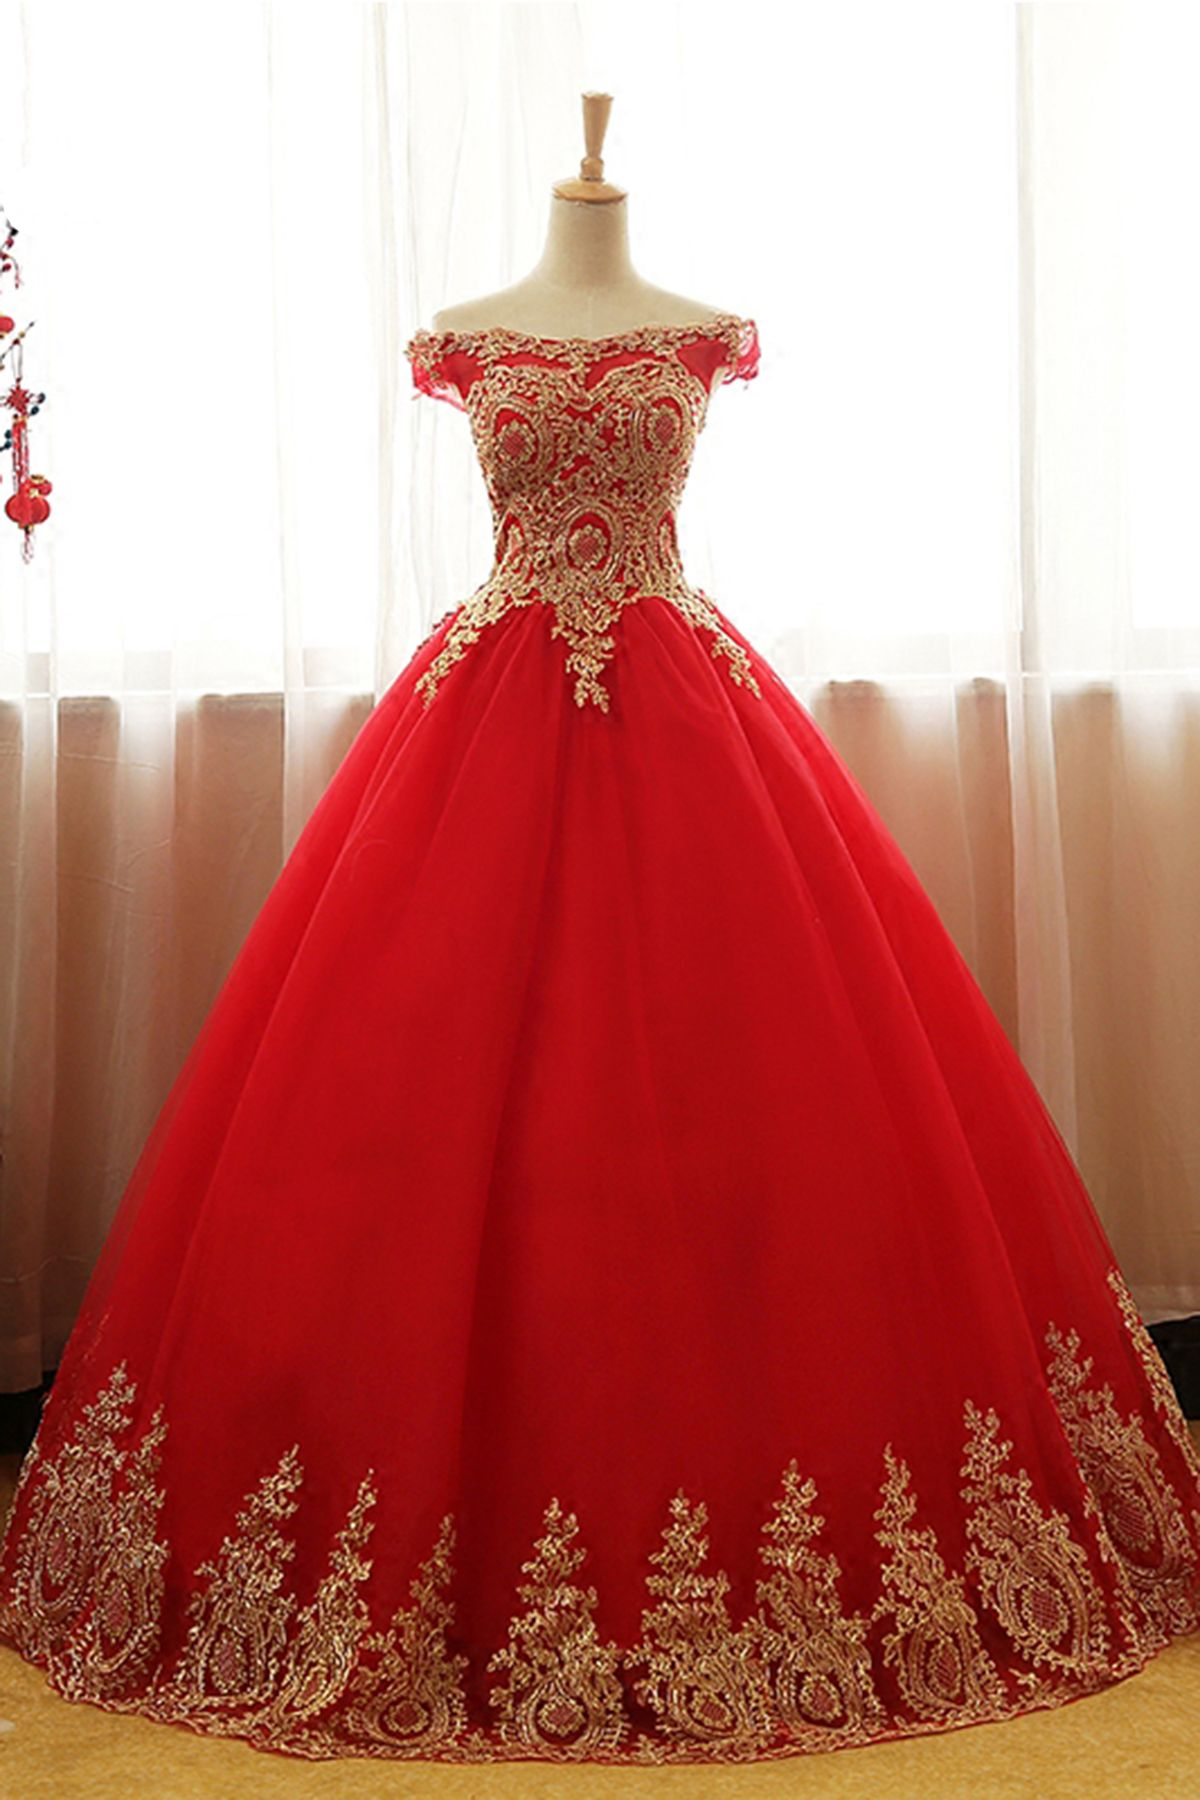 Red Tulle Long Off Shoulder Formal Evening Dress With Golden Appliques 135 In 2021 Red Quinceanera Dresses Formal Evening Dresses Evening Dresses [ 1800 x 1200 Pixel ]